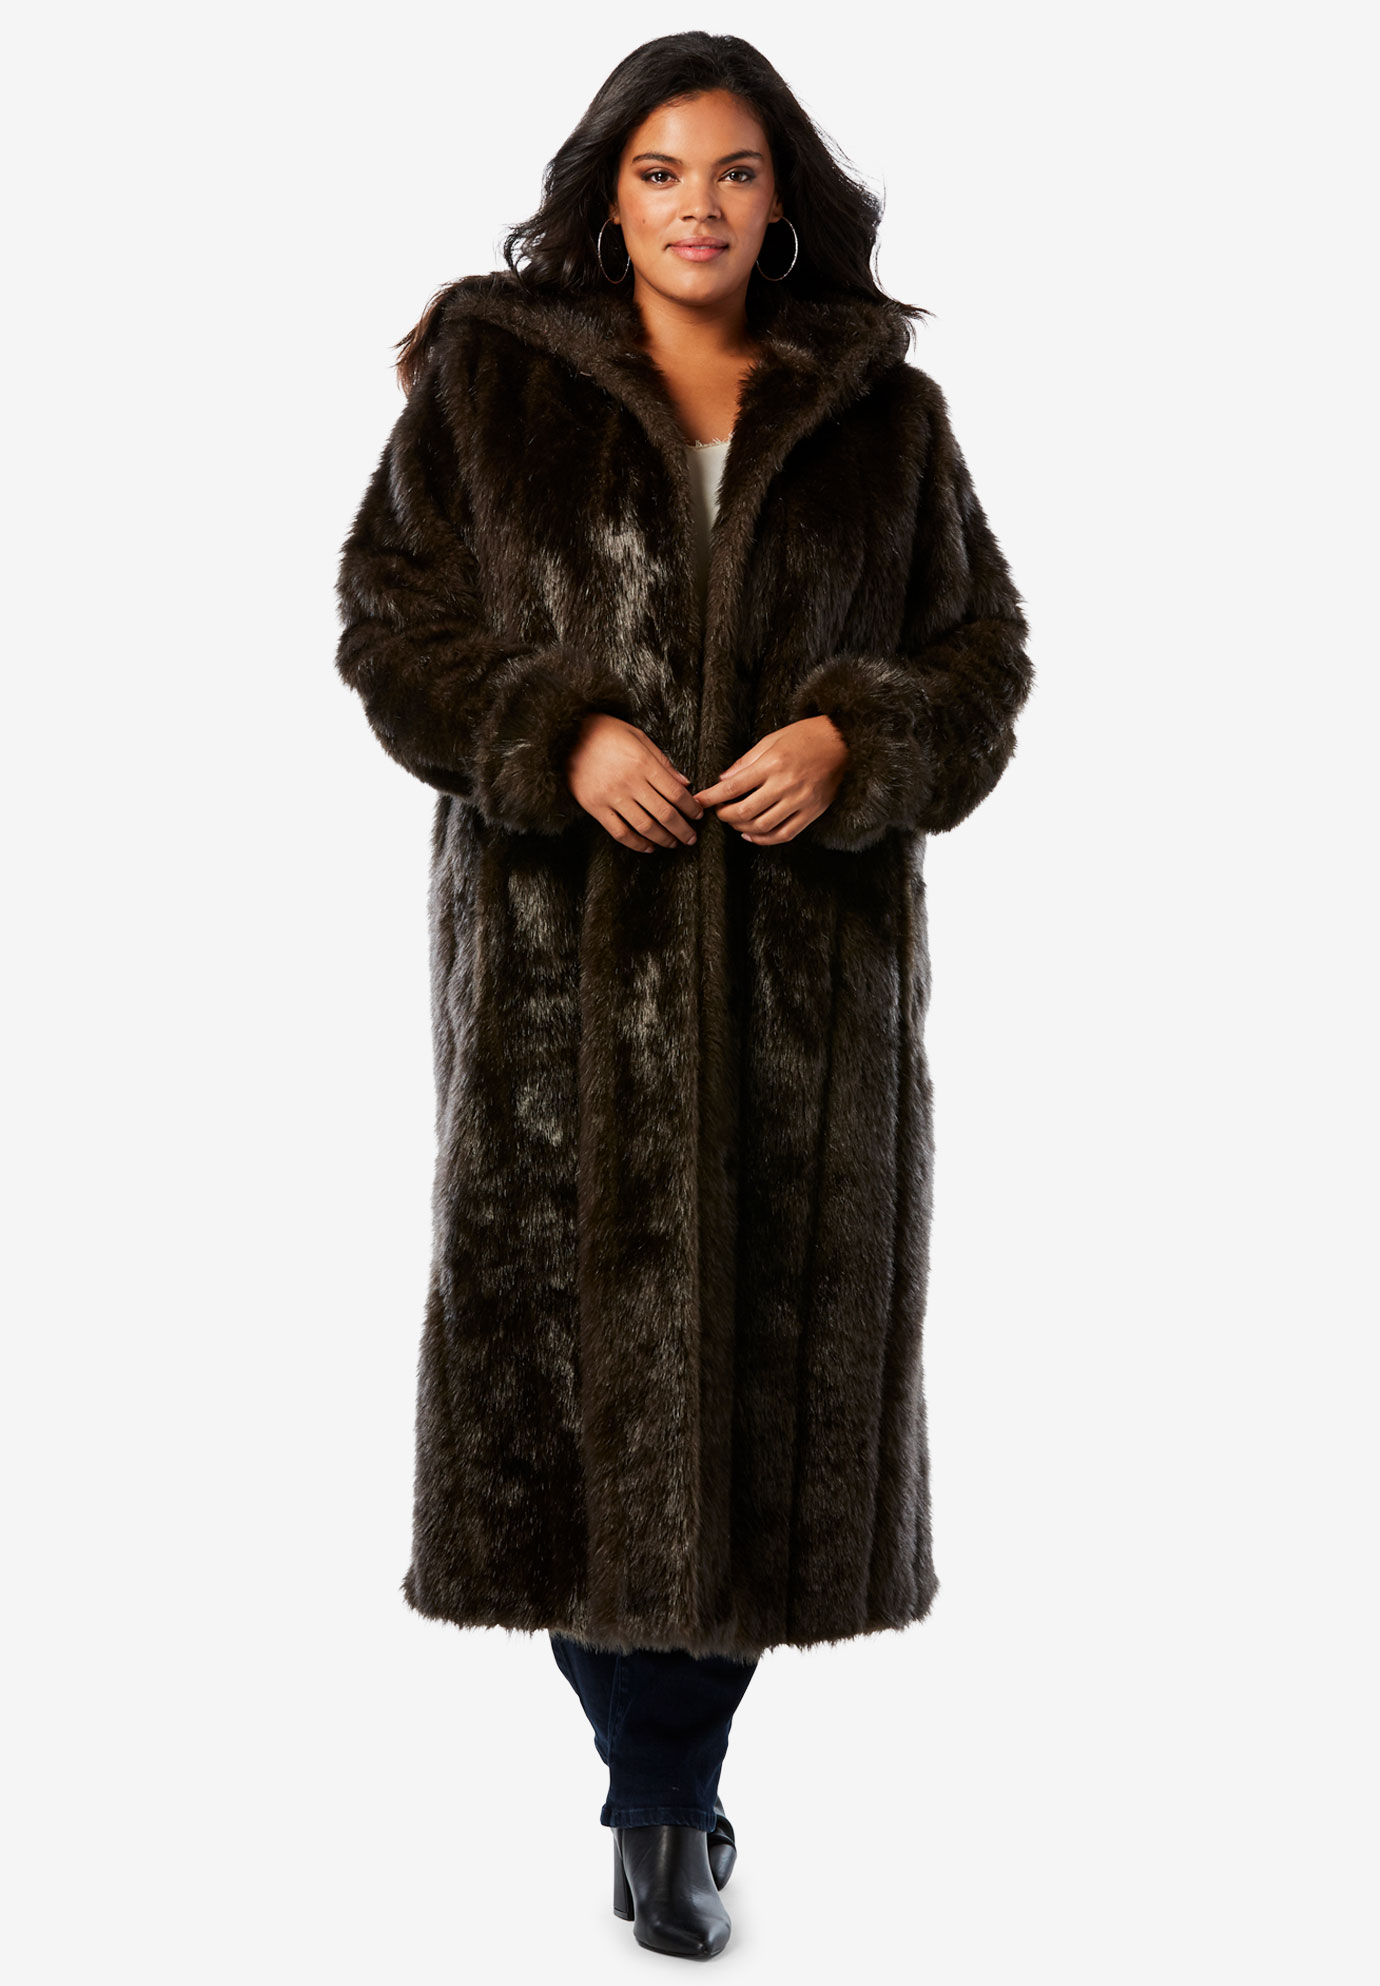 779391e23bffe Full Length Faux-Fur Coat with Hood